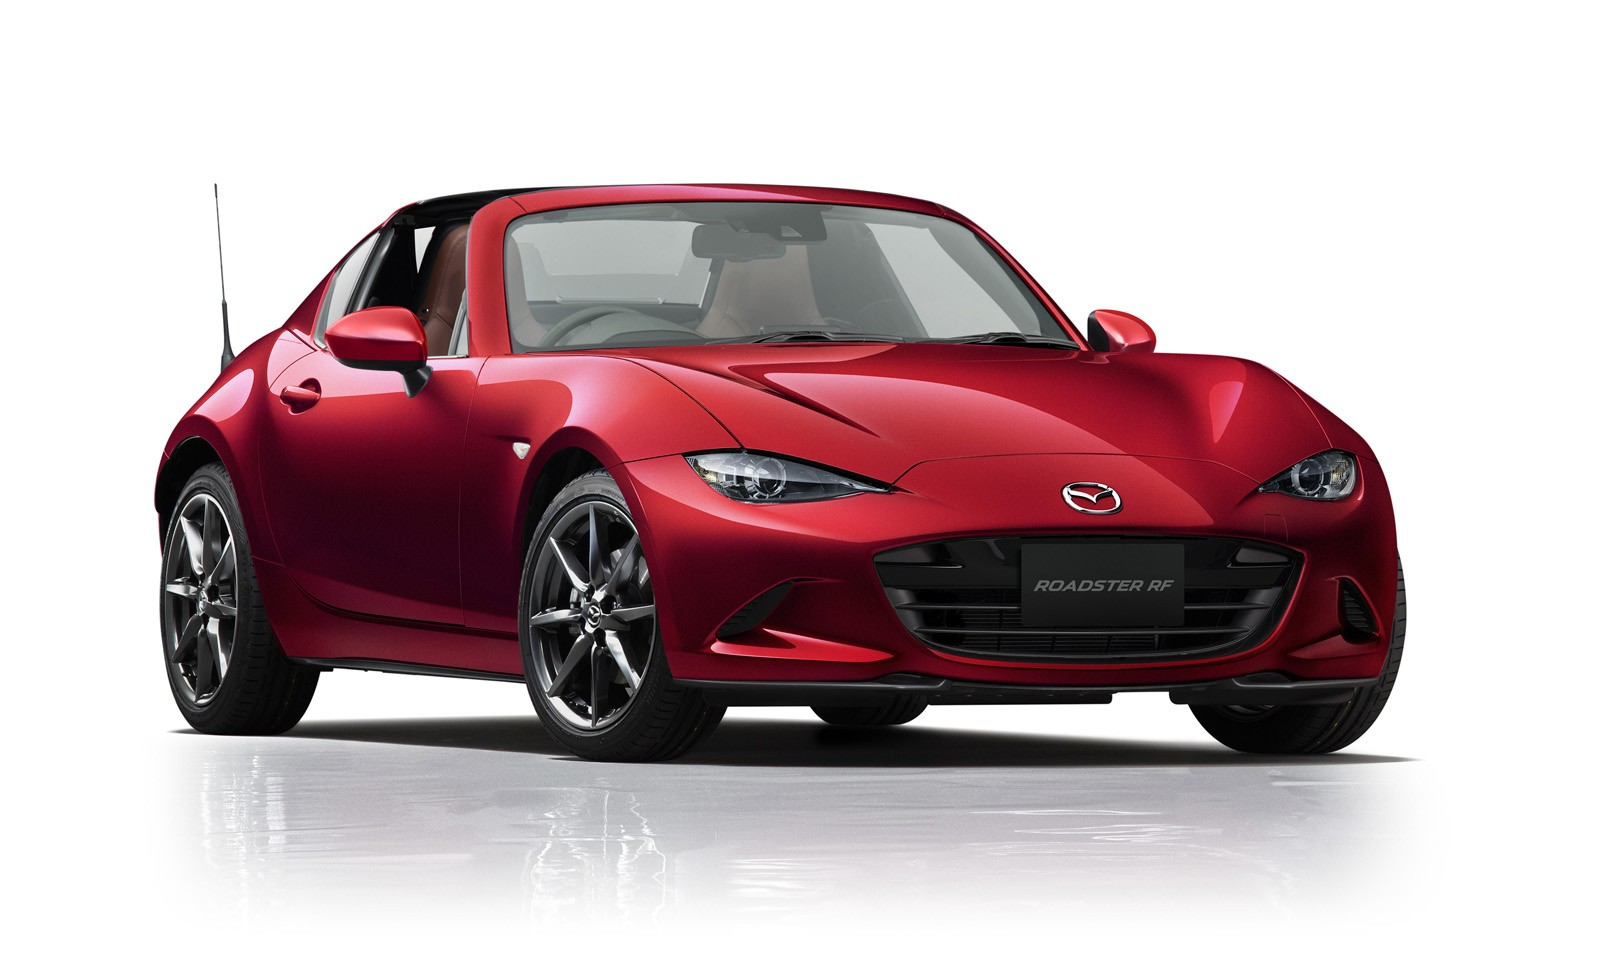 2018 mazda mx 5 rf pricing announced retractable fastback starts at 31 910 autoevolution. Black Bedroom Furniture Sets. Home Design Ideas